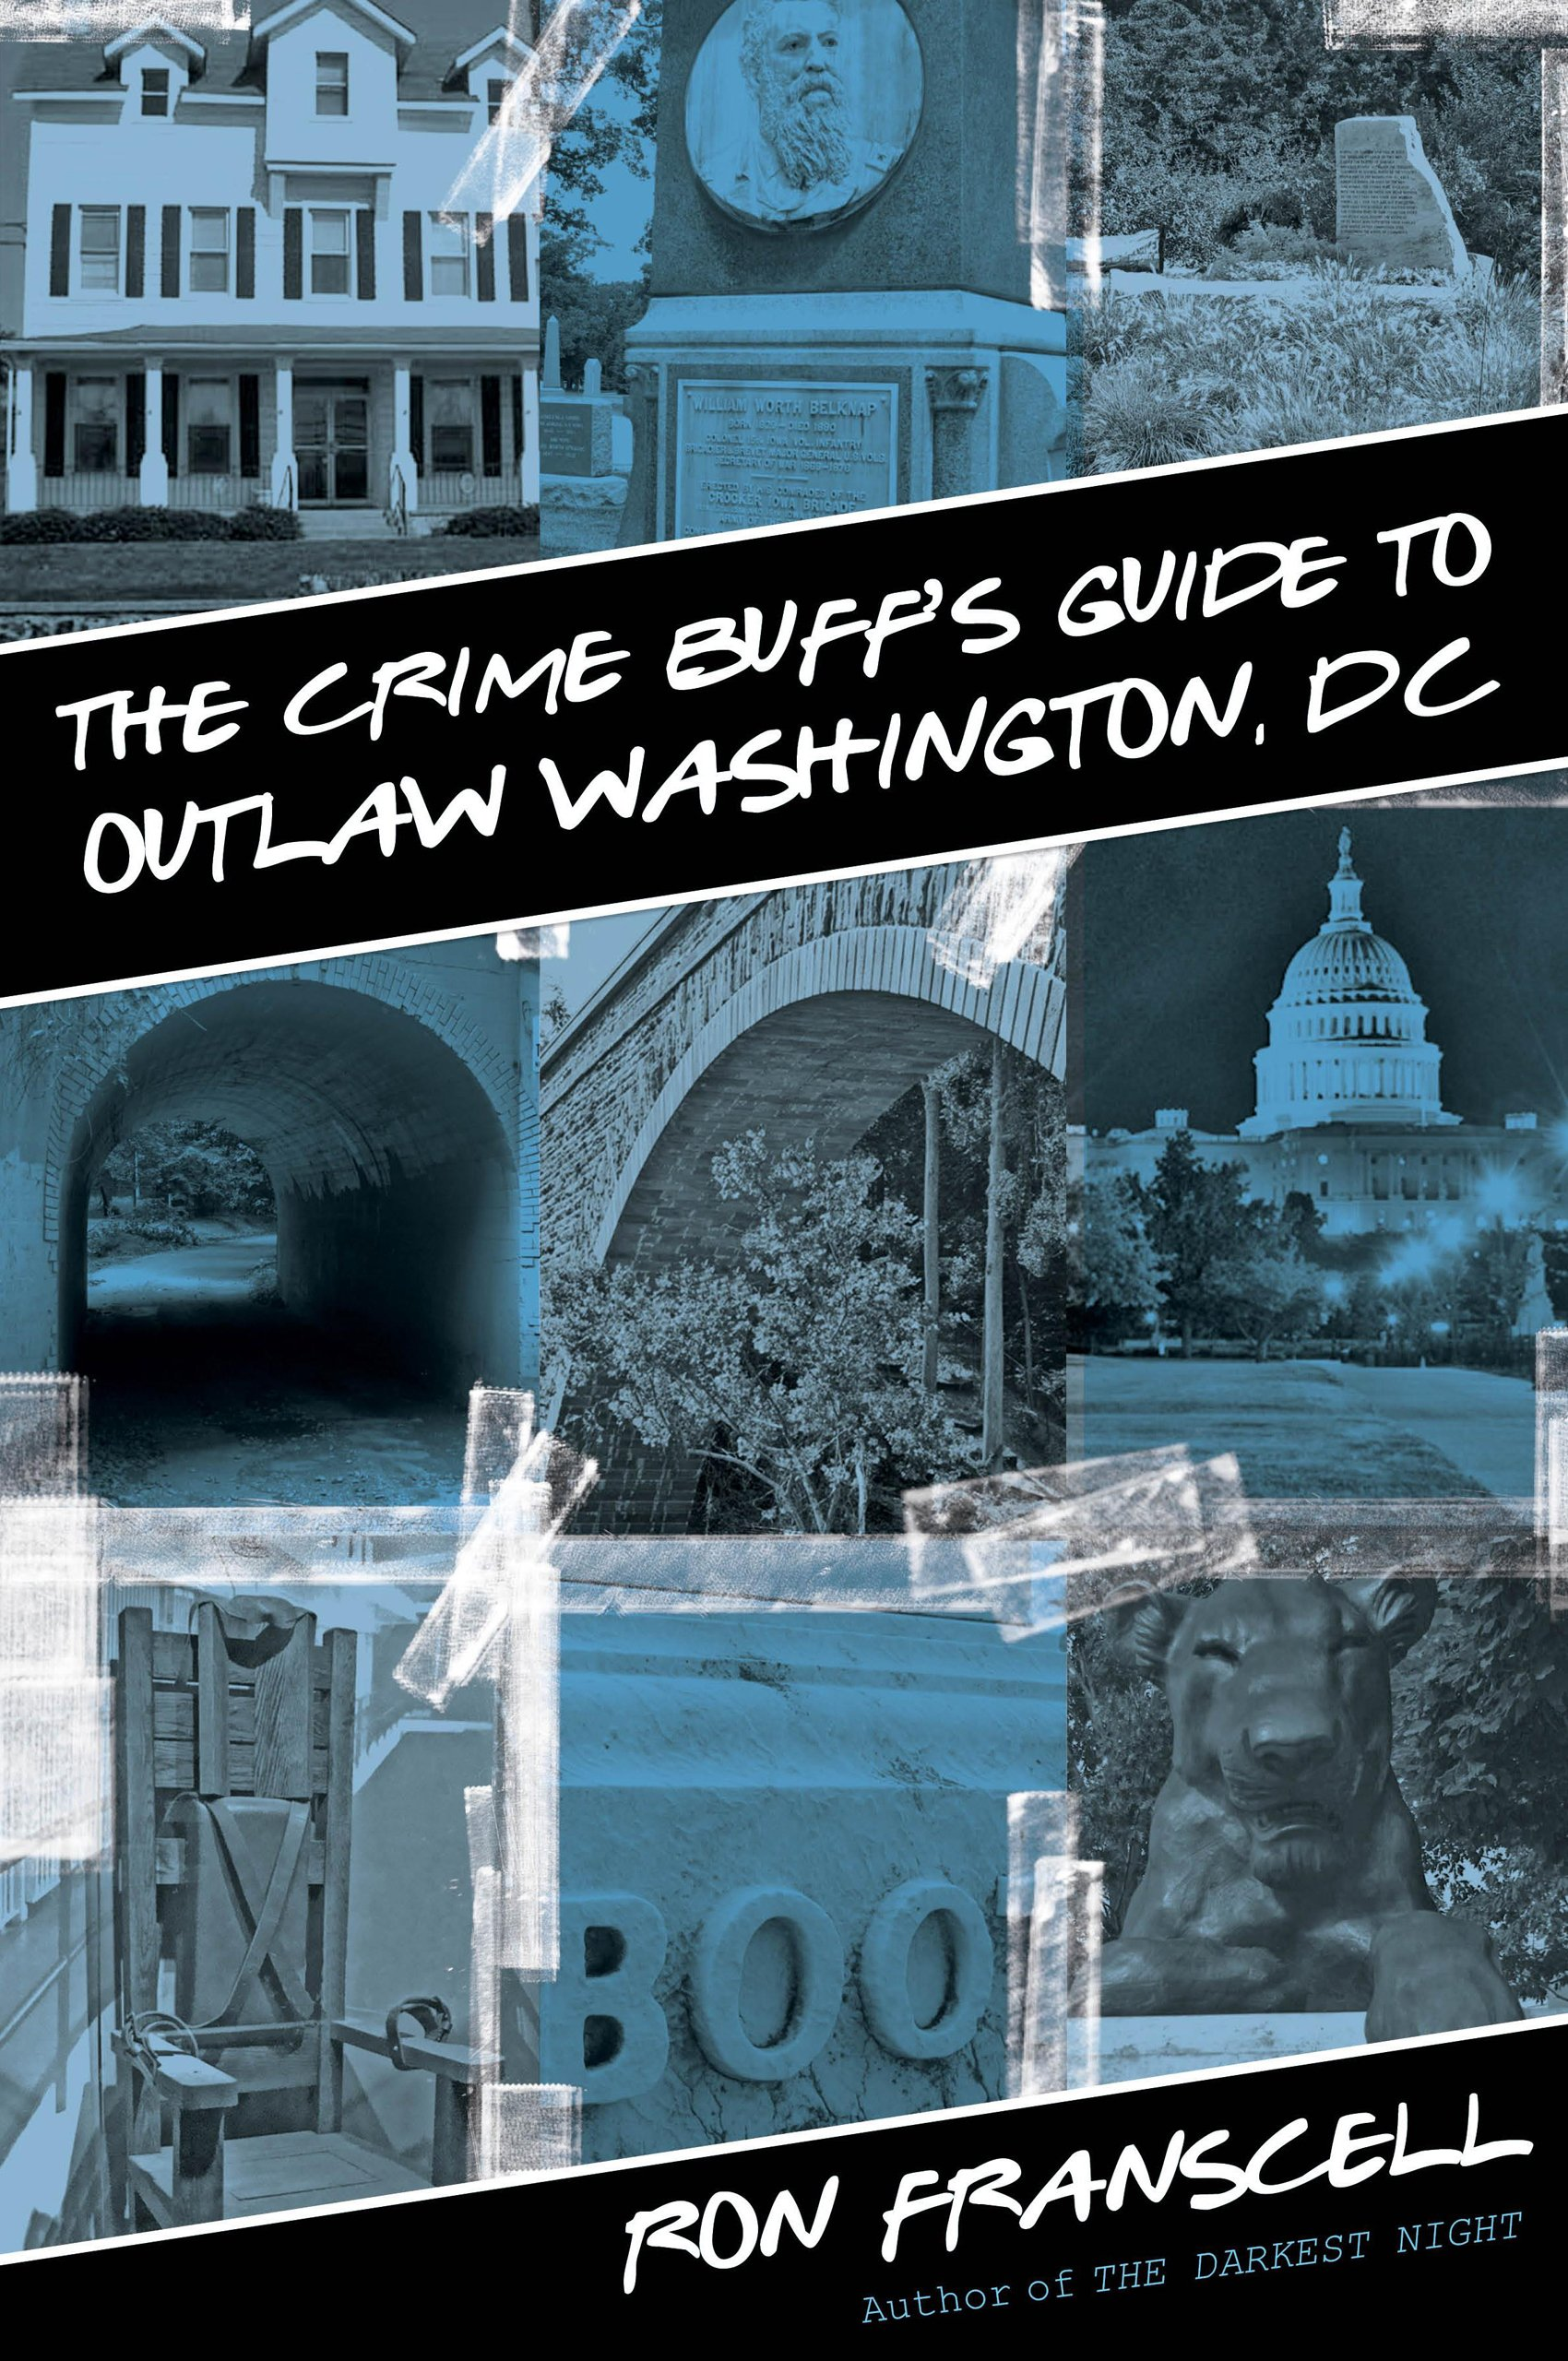 Download Crime Buff's Guide to Outlaw Washington, DC (Crime Buff's Guides) pdf